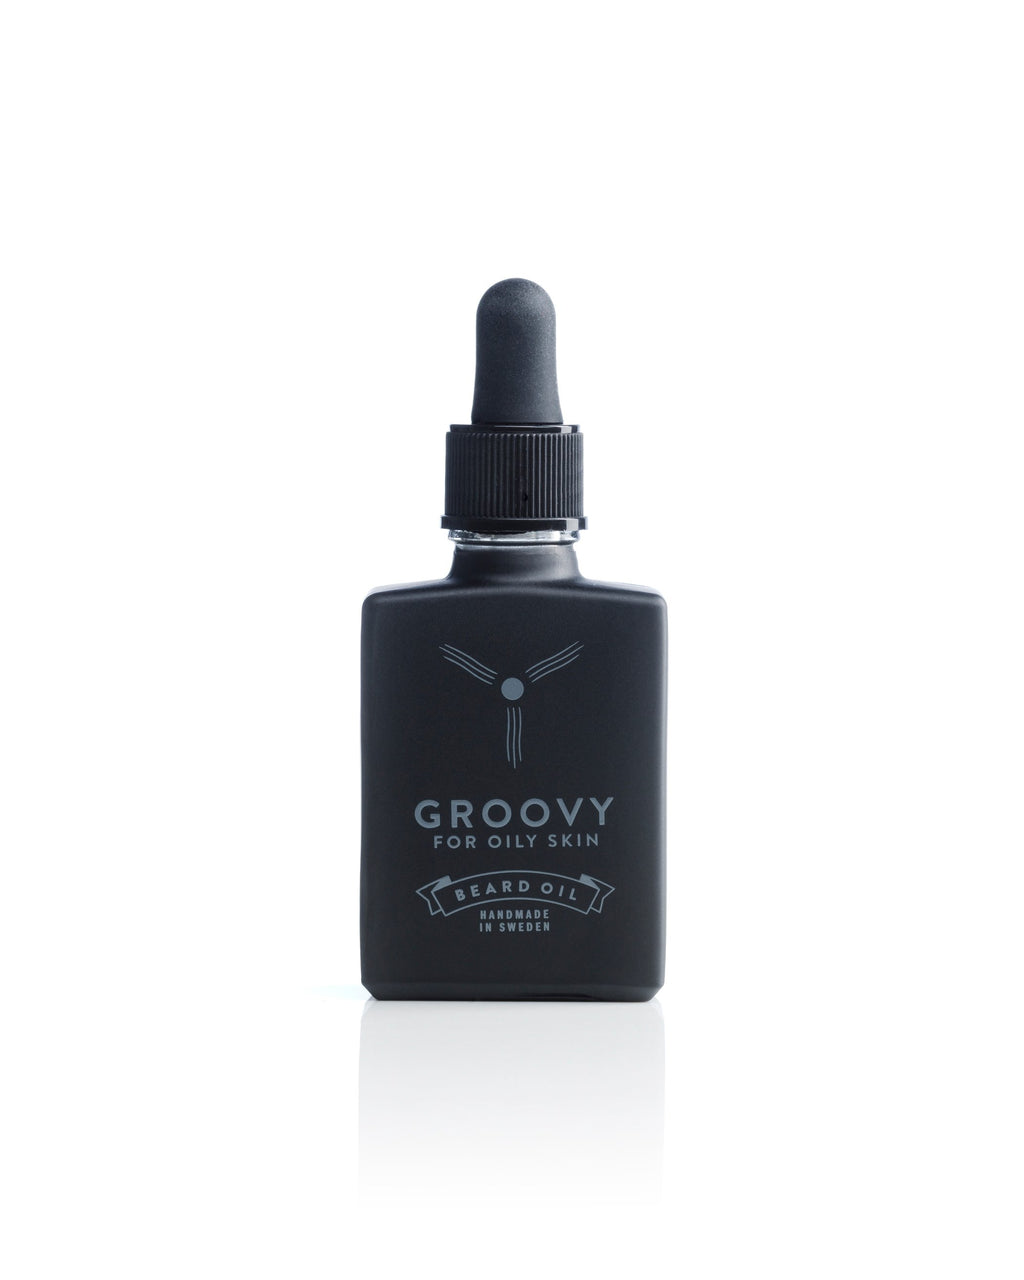 Organic beardoil for oily skin